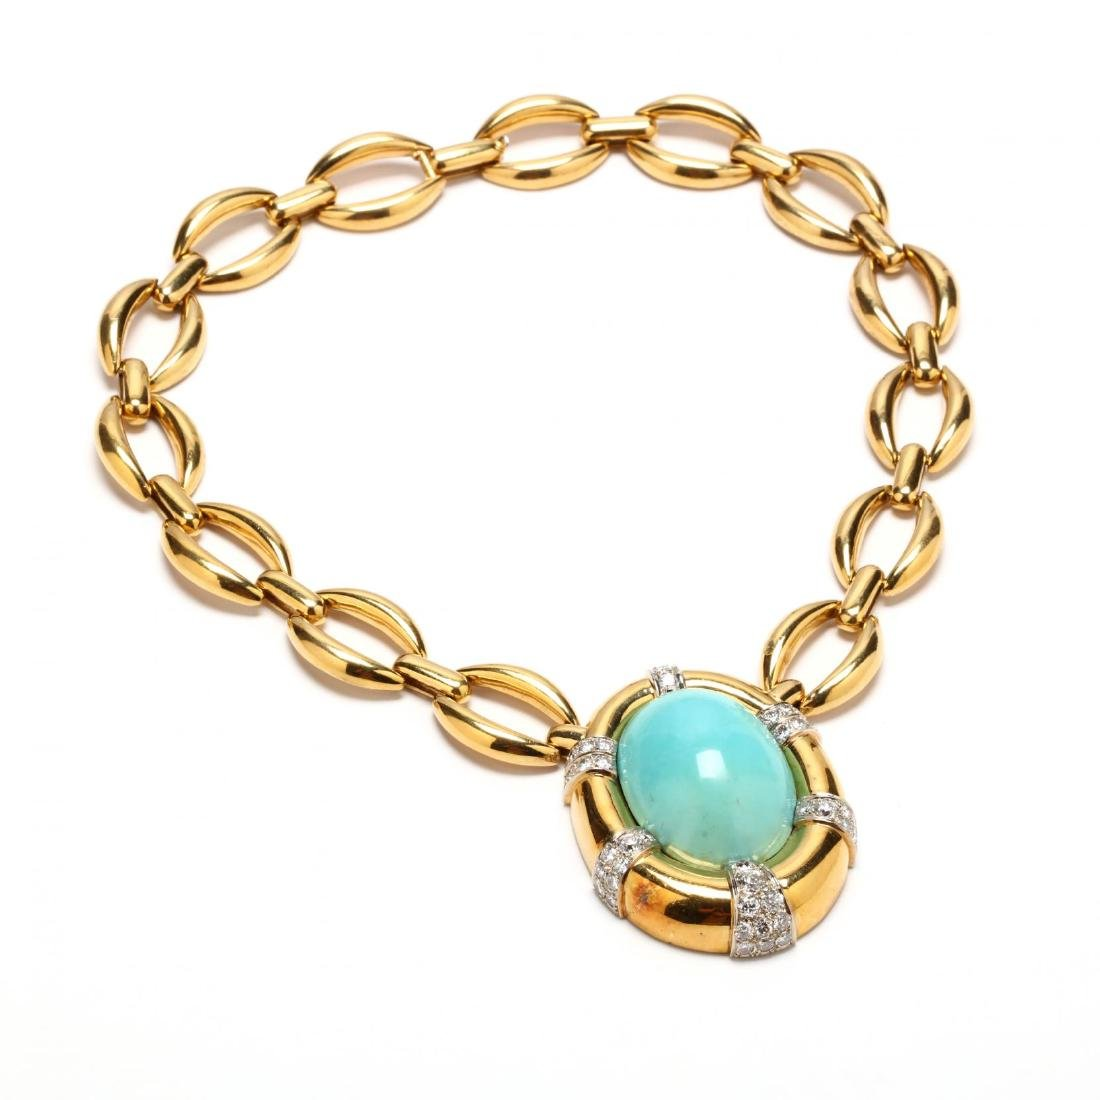 18KT Gold, Turquoise, and Diamond Necklace